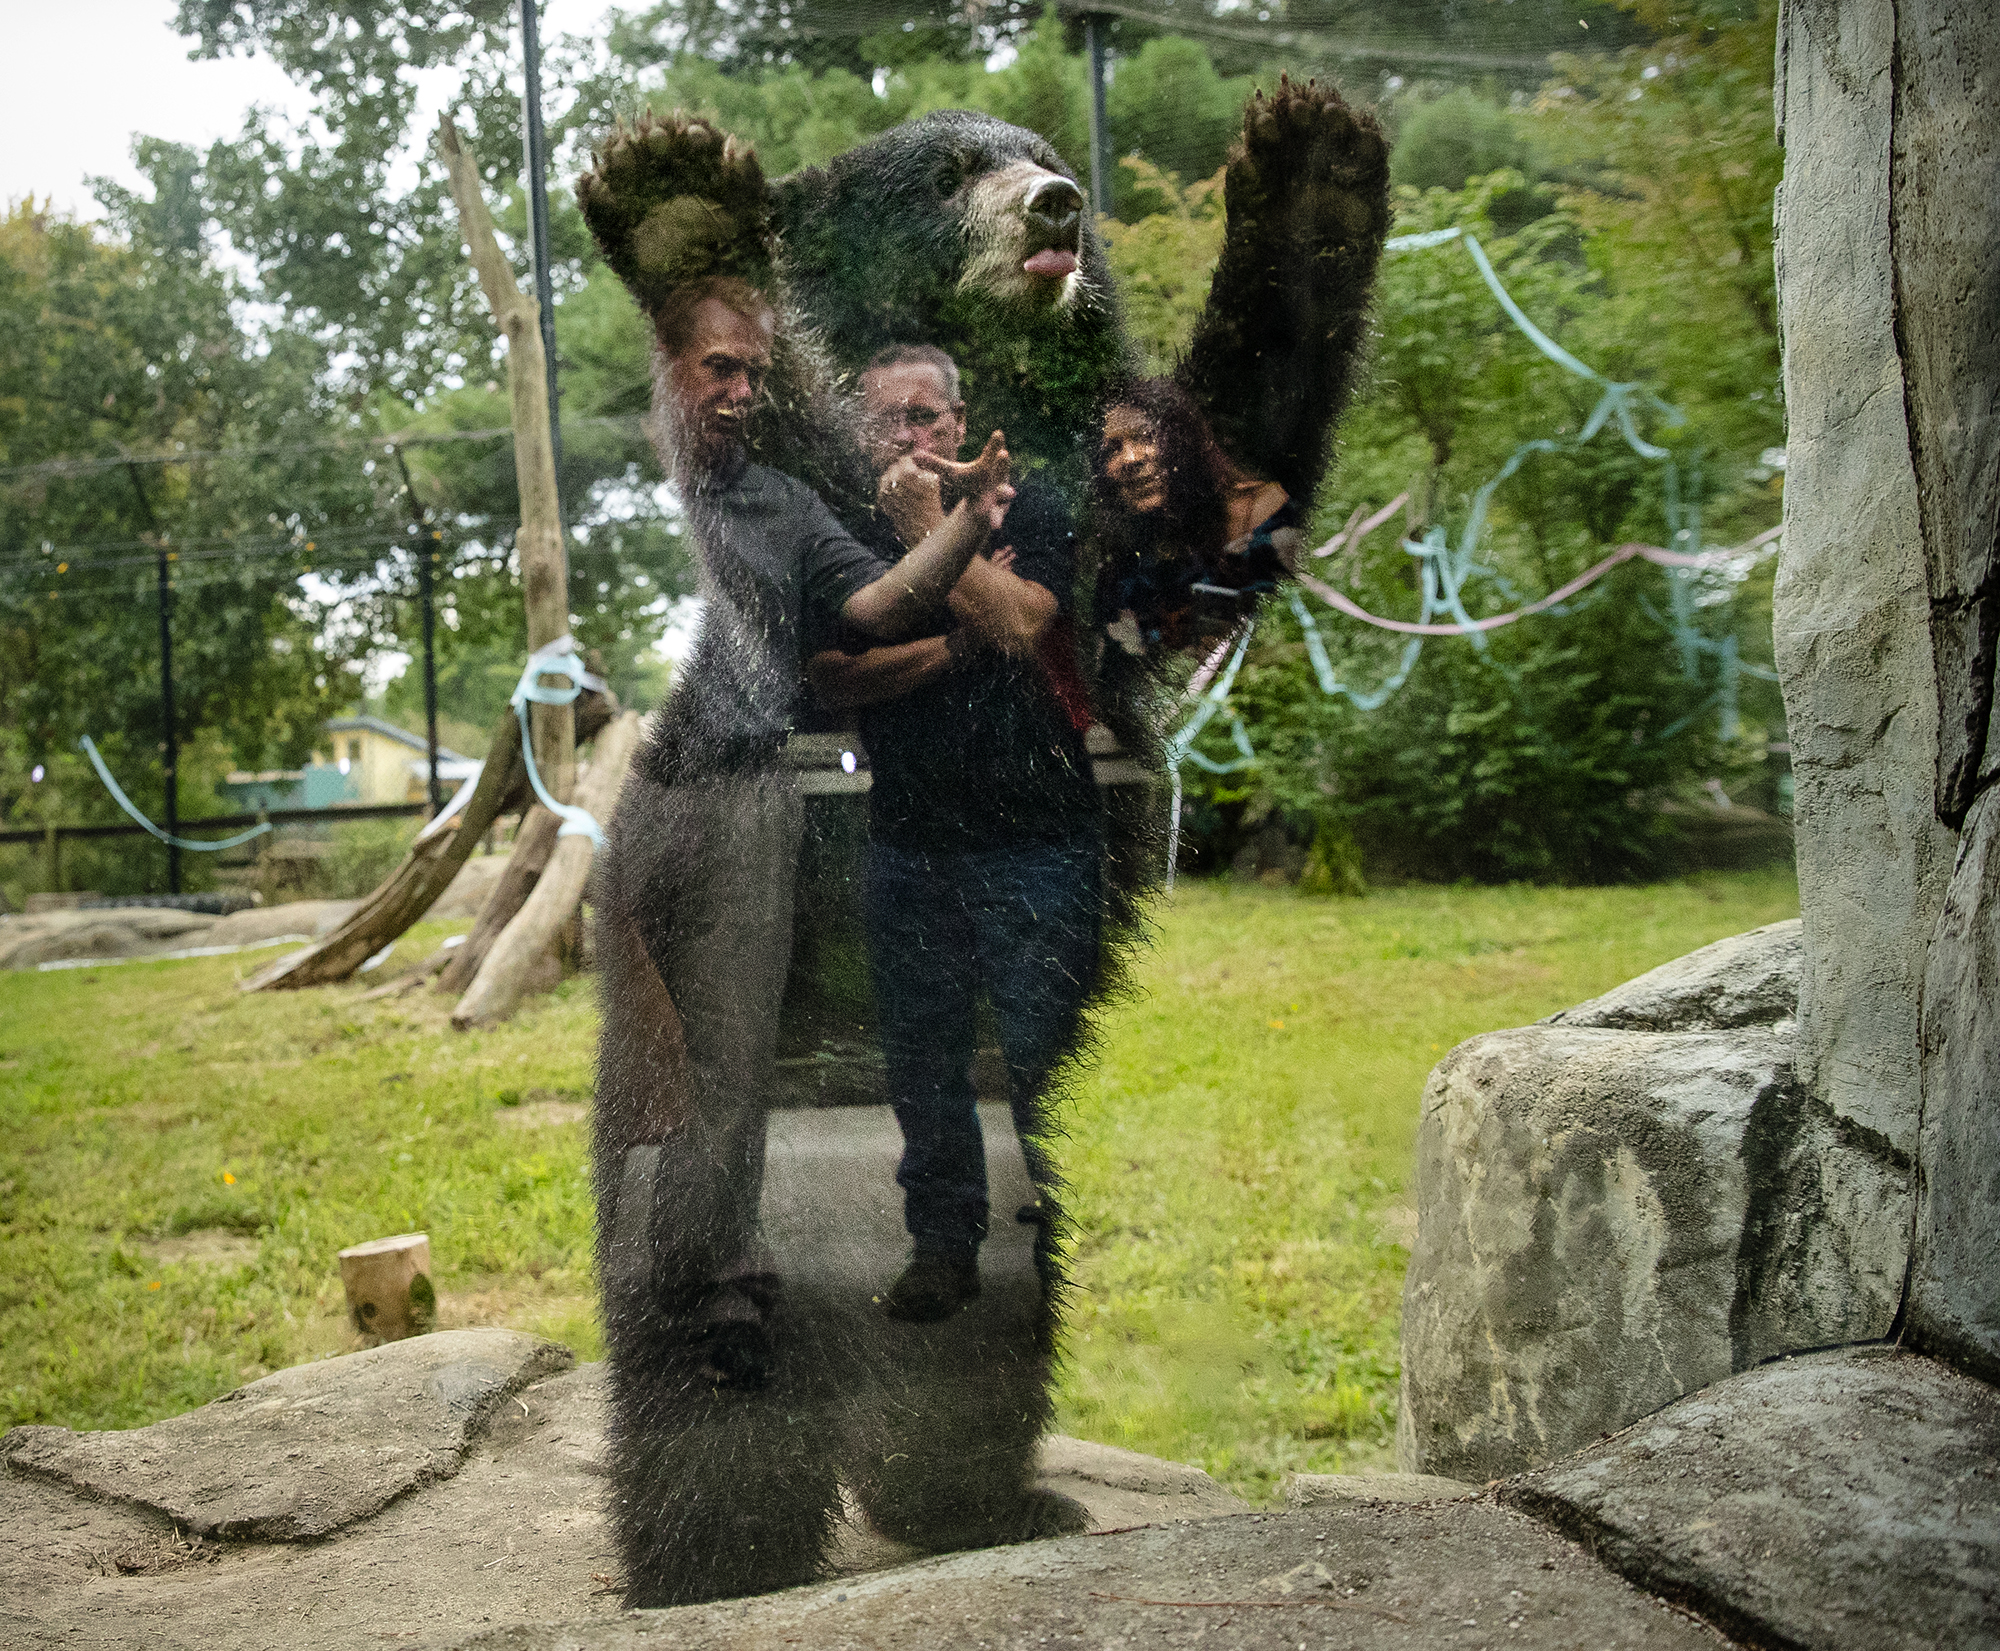 One of two new bear cubs stands up on his hind legs while people watching are reflected in enclosure's window at Henson Robinson Zoo Thursday, Sept. 6, 2018. The two black bears, Kenai and Klondike, aren't siblings, but were both found abandoned in Alaska. [Ted Schurter/The State Journal-Register]